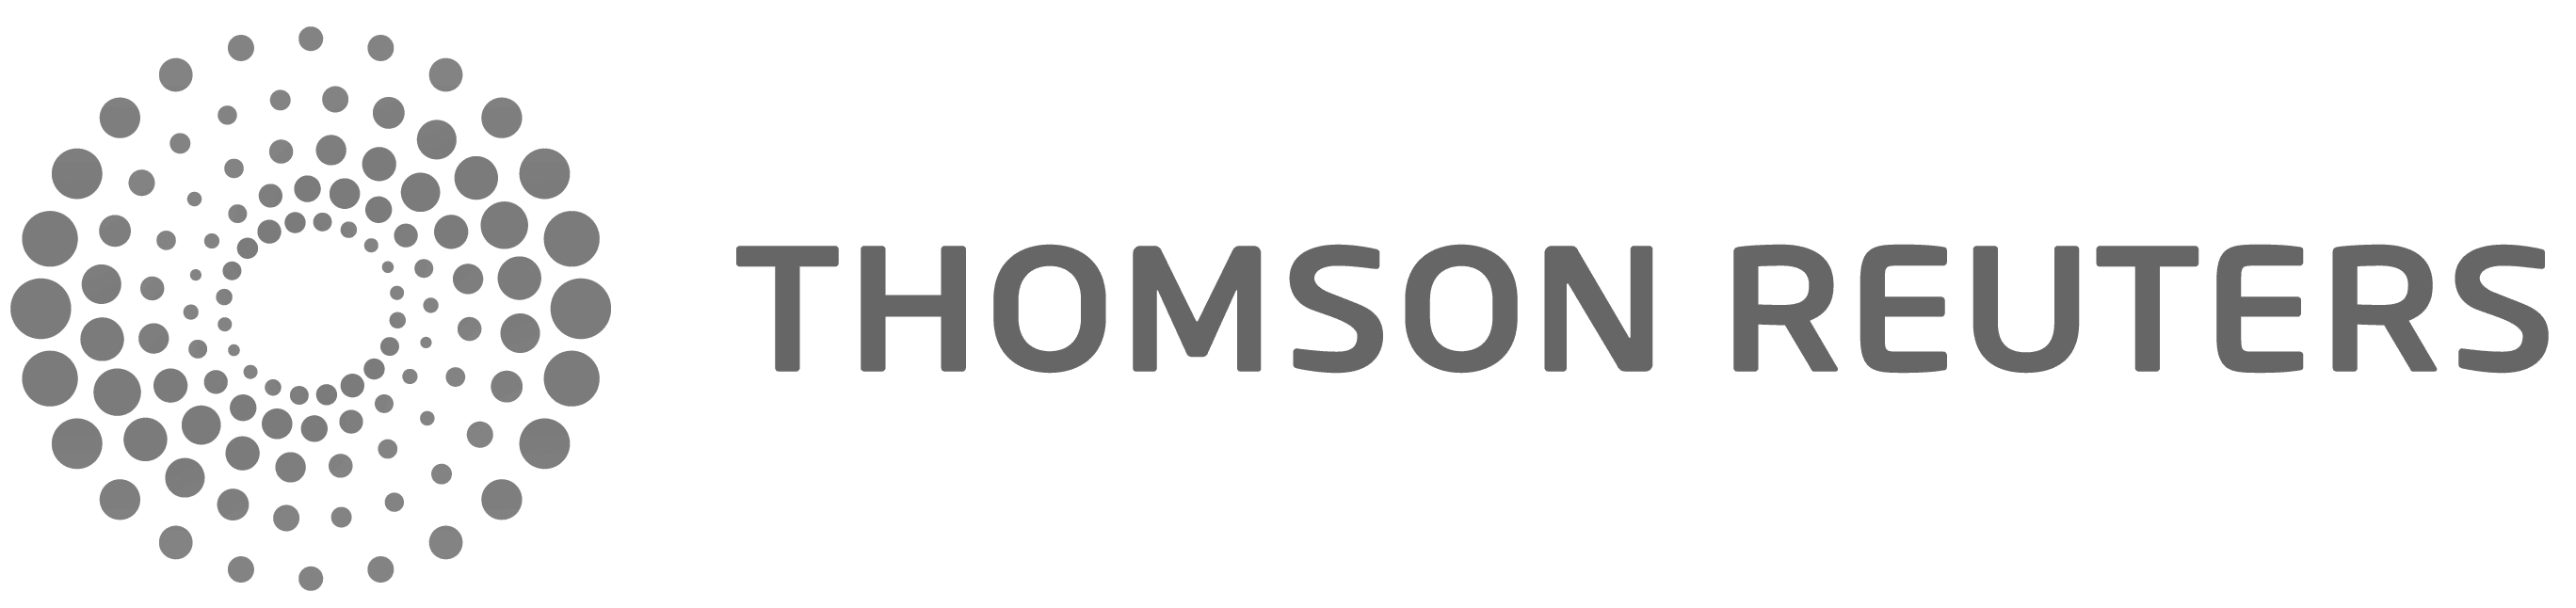 thomson reuters client